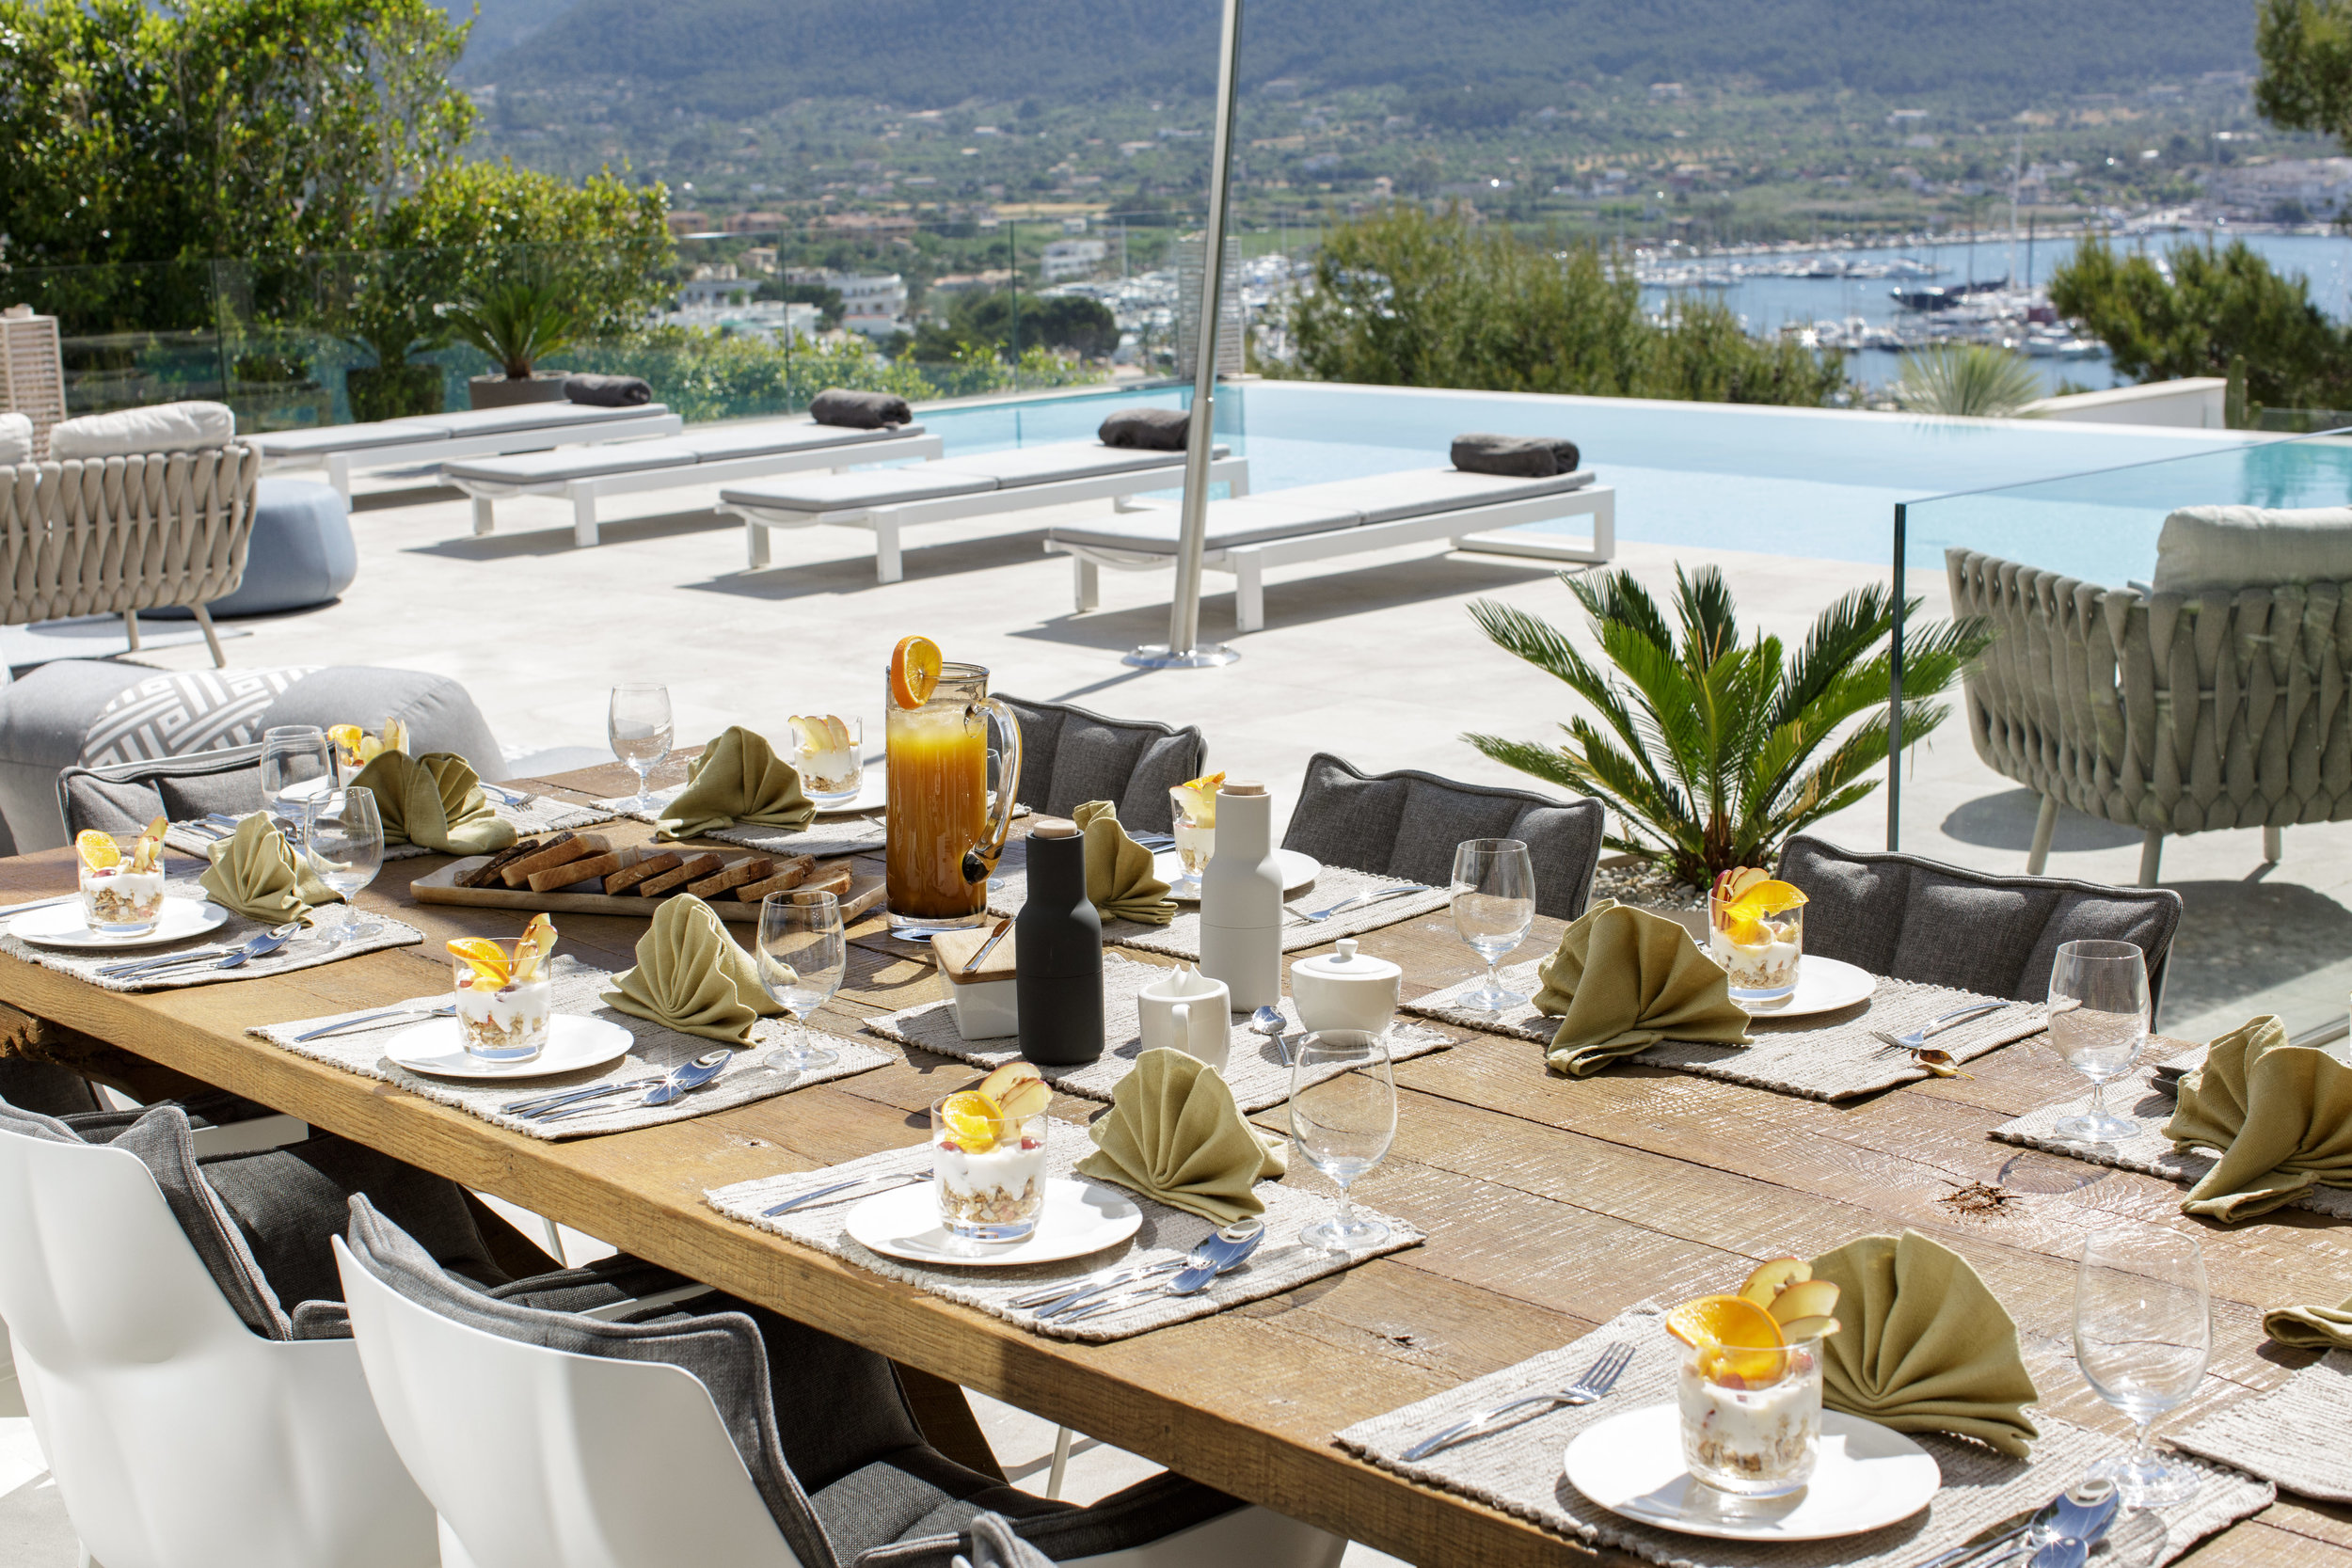 - Breakfast at Villa Infinitum is the perfect way to start the day, either on the pool or roof terrace looking out into the port. Cooked and continental breakfast is included in the rental price.